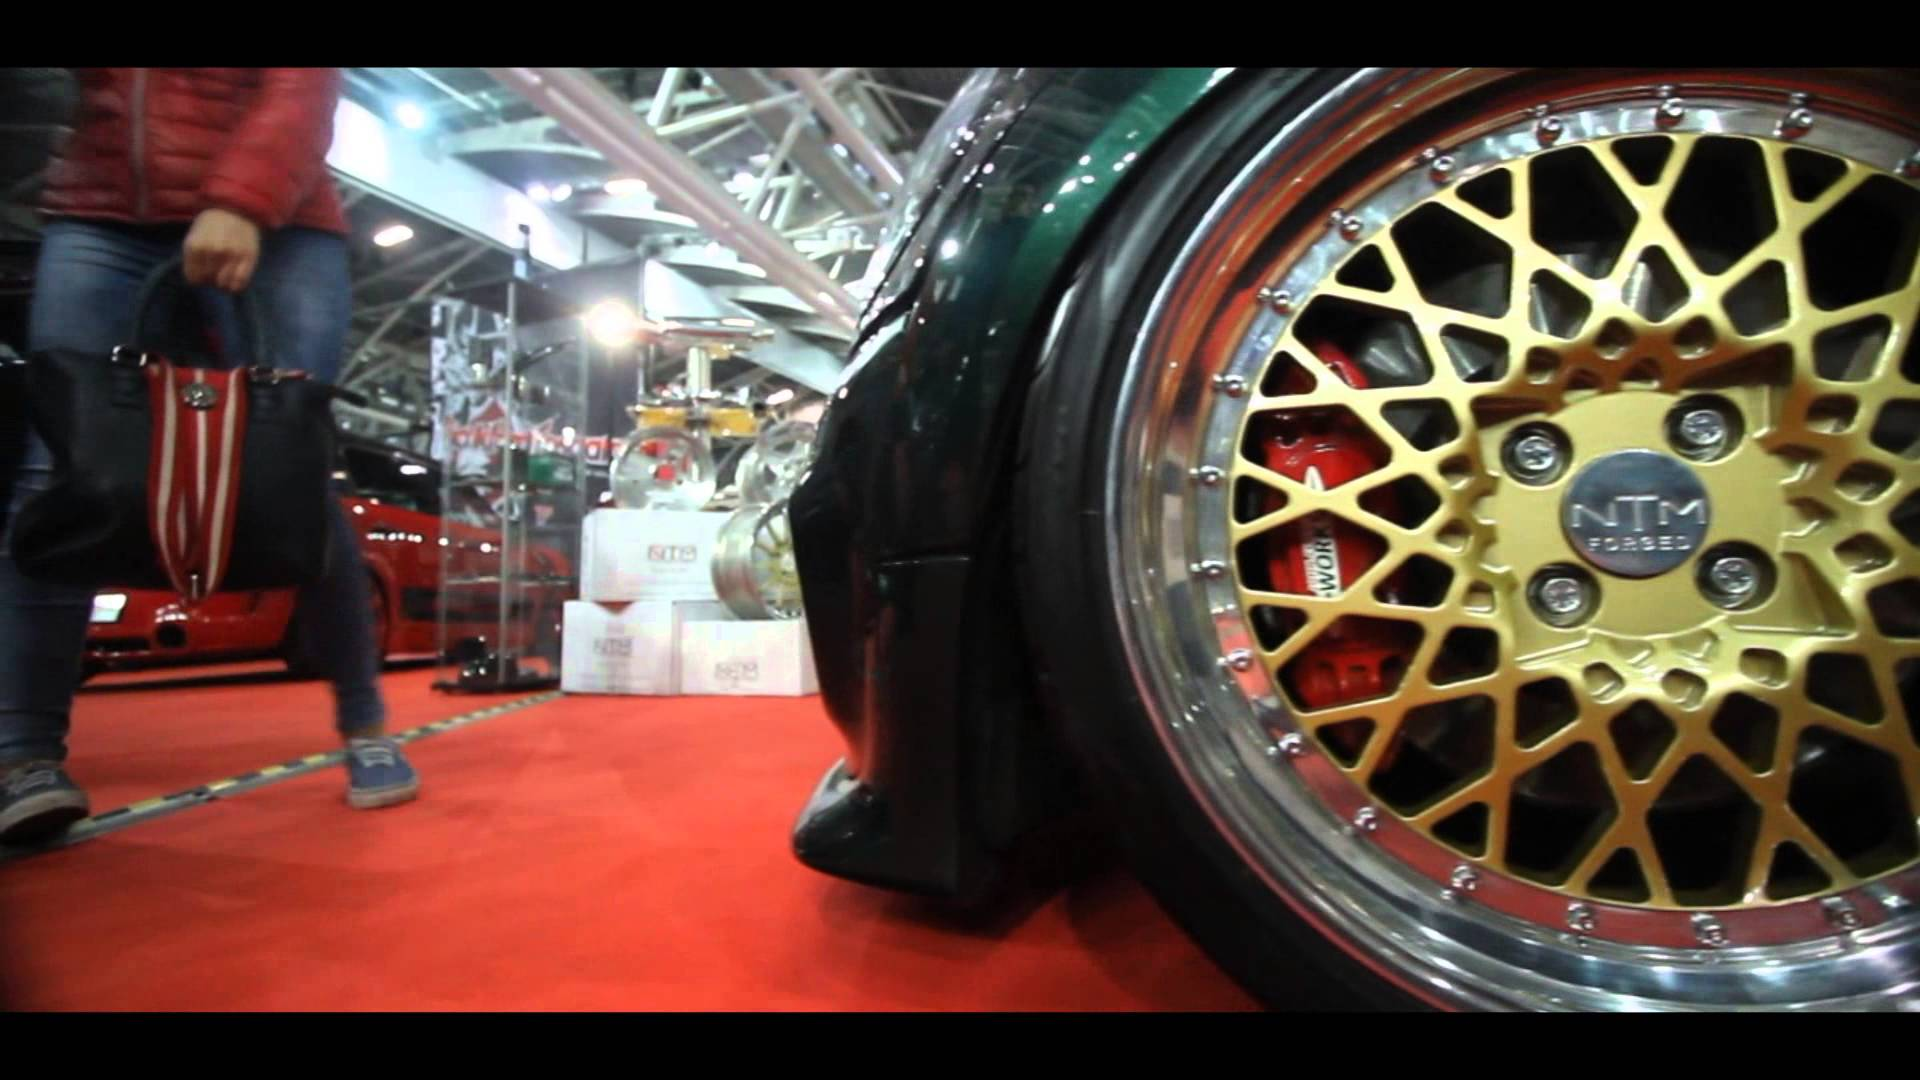 RSI C6 @ Expo tuning Torino 2k15 | Full edition